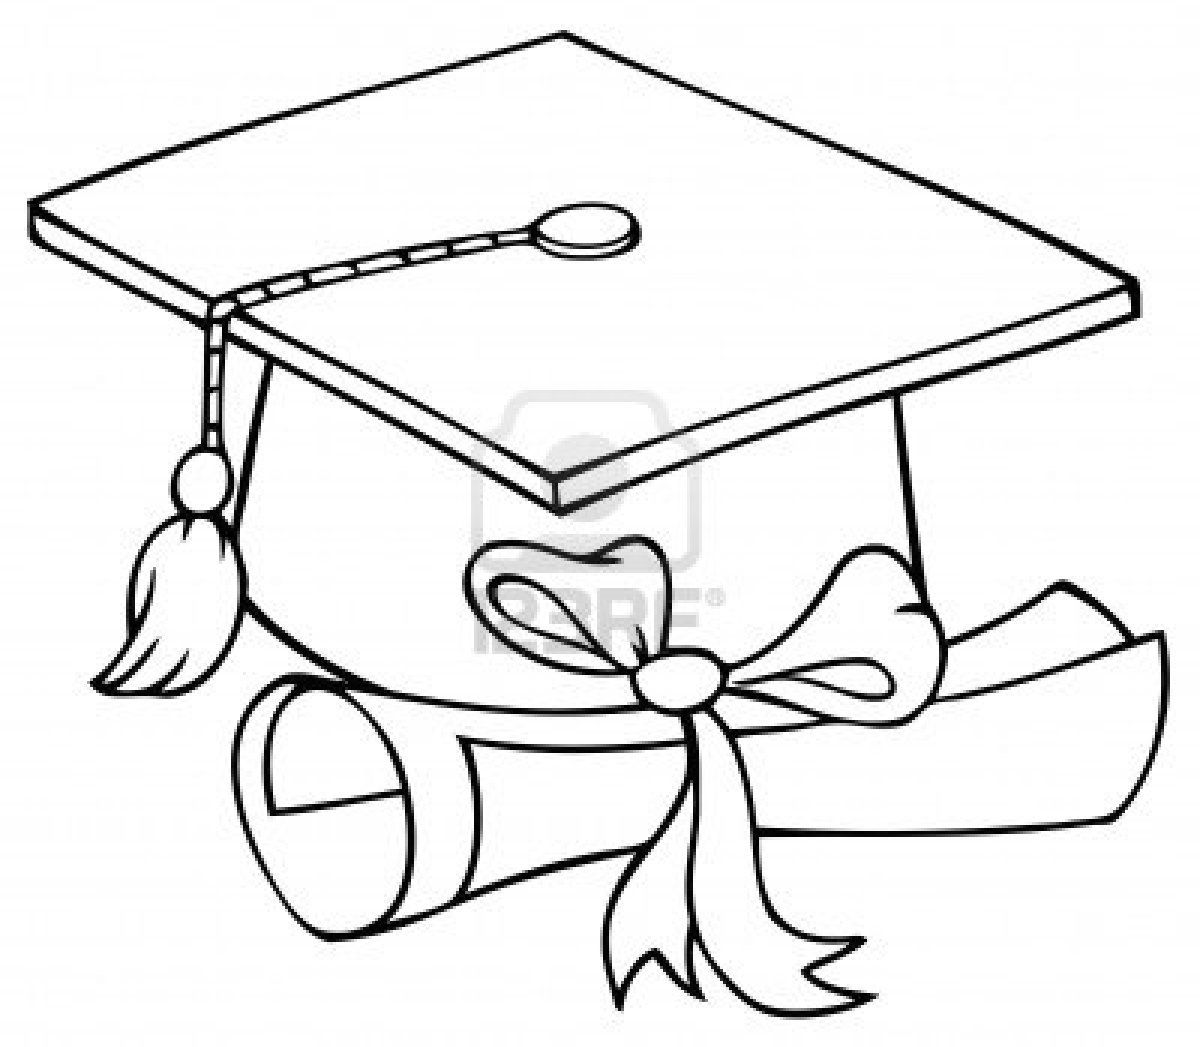 Graduation Cap Coloring Page Graduation Cap Coloring Page Coloring Pages Pictures Imagixs Graduation Cap Drawing Graduation Drawing Coloring Pages